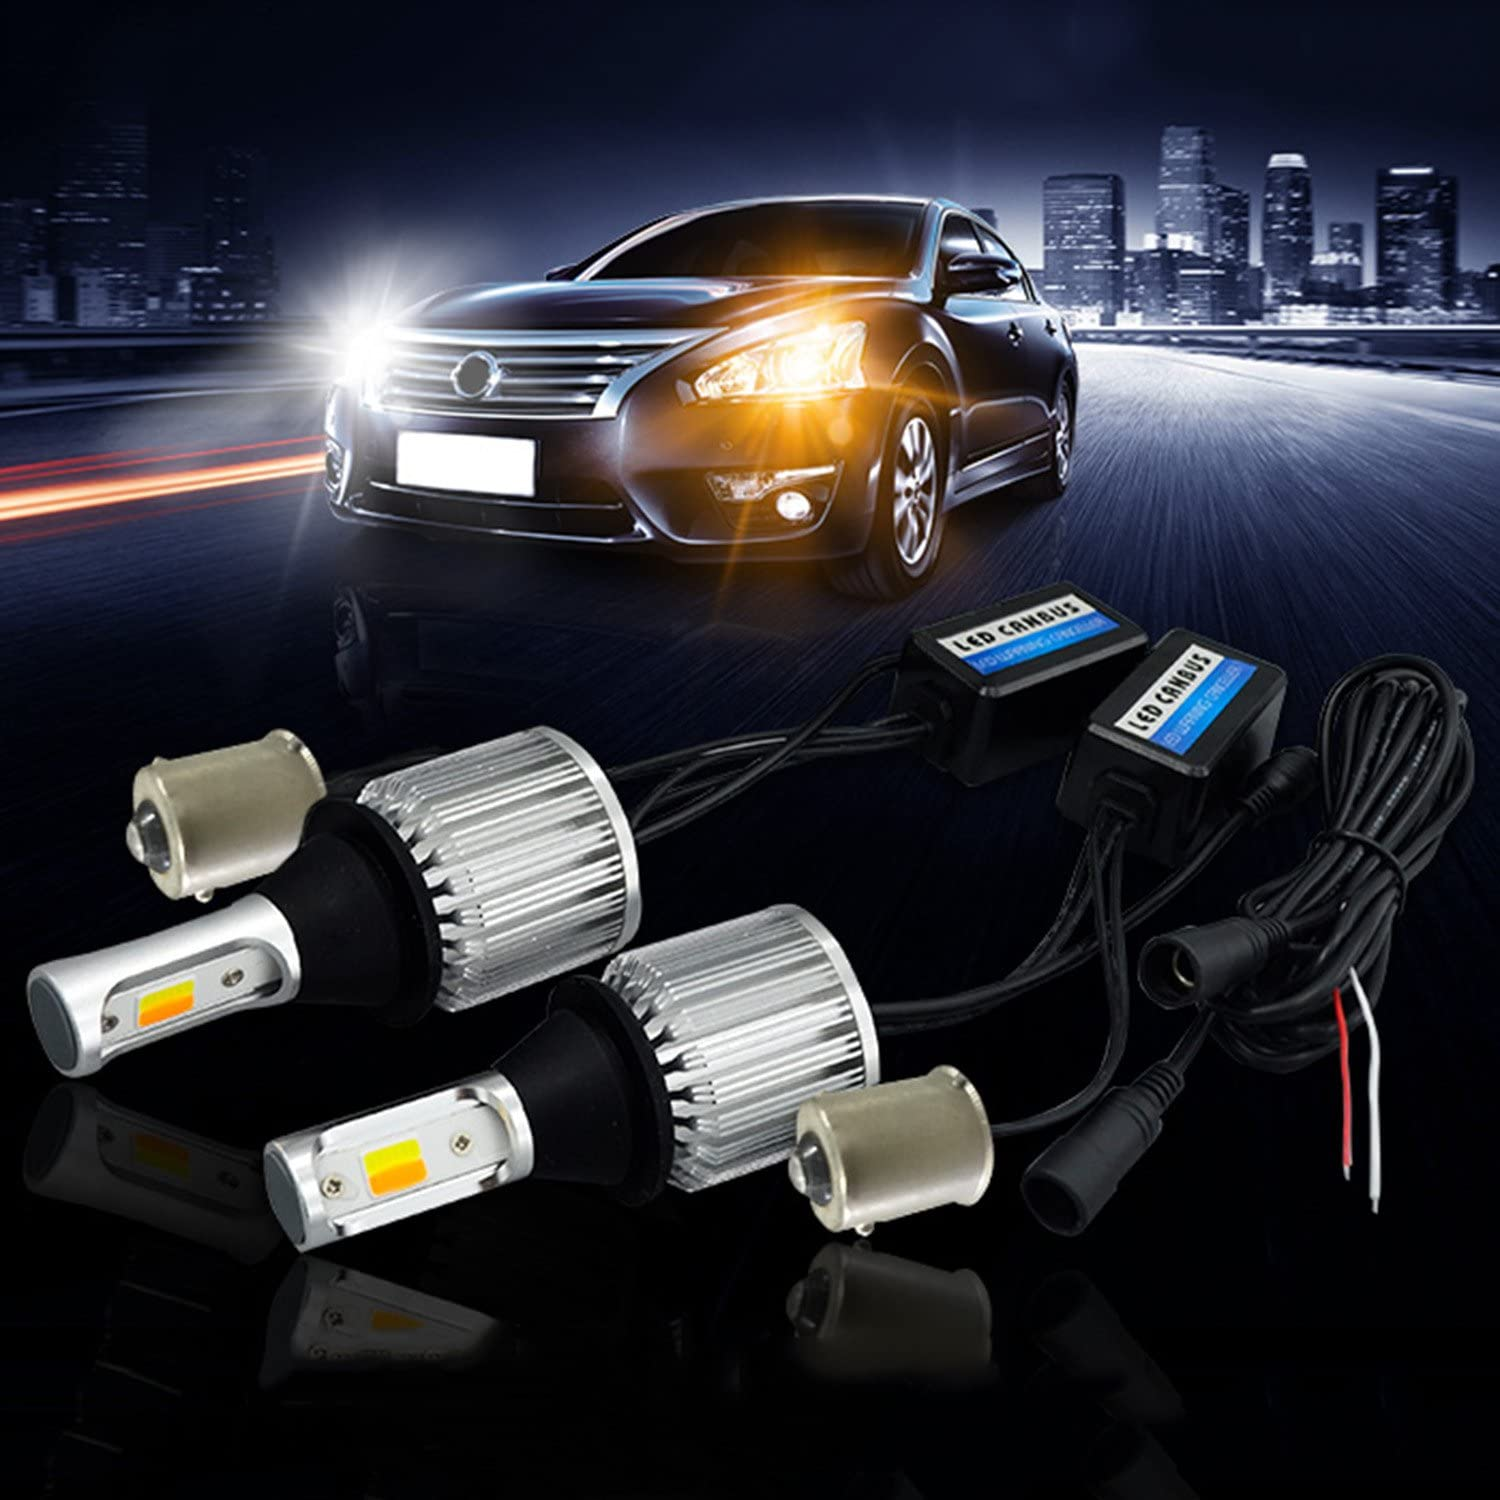 SOCAL-LED 2x BA15s 1156 LED Bulb Switchback Extremely Bright 30W 3000LM COB High Power DRL Turn Signal Light Kit, Canbus Error LED Free Decoder Resistor, White/Amber